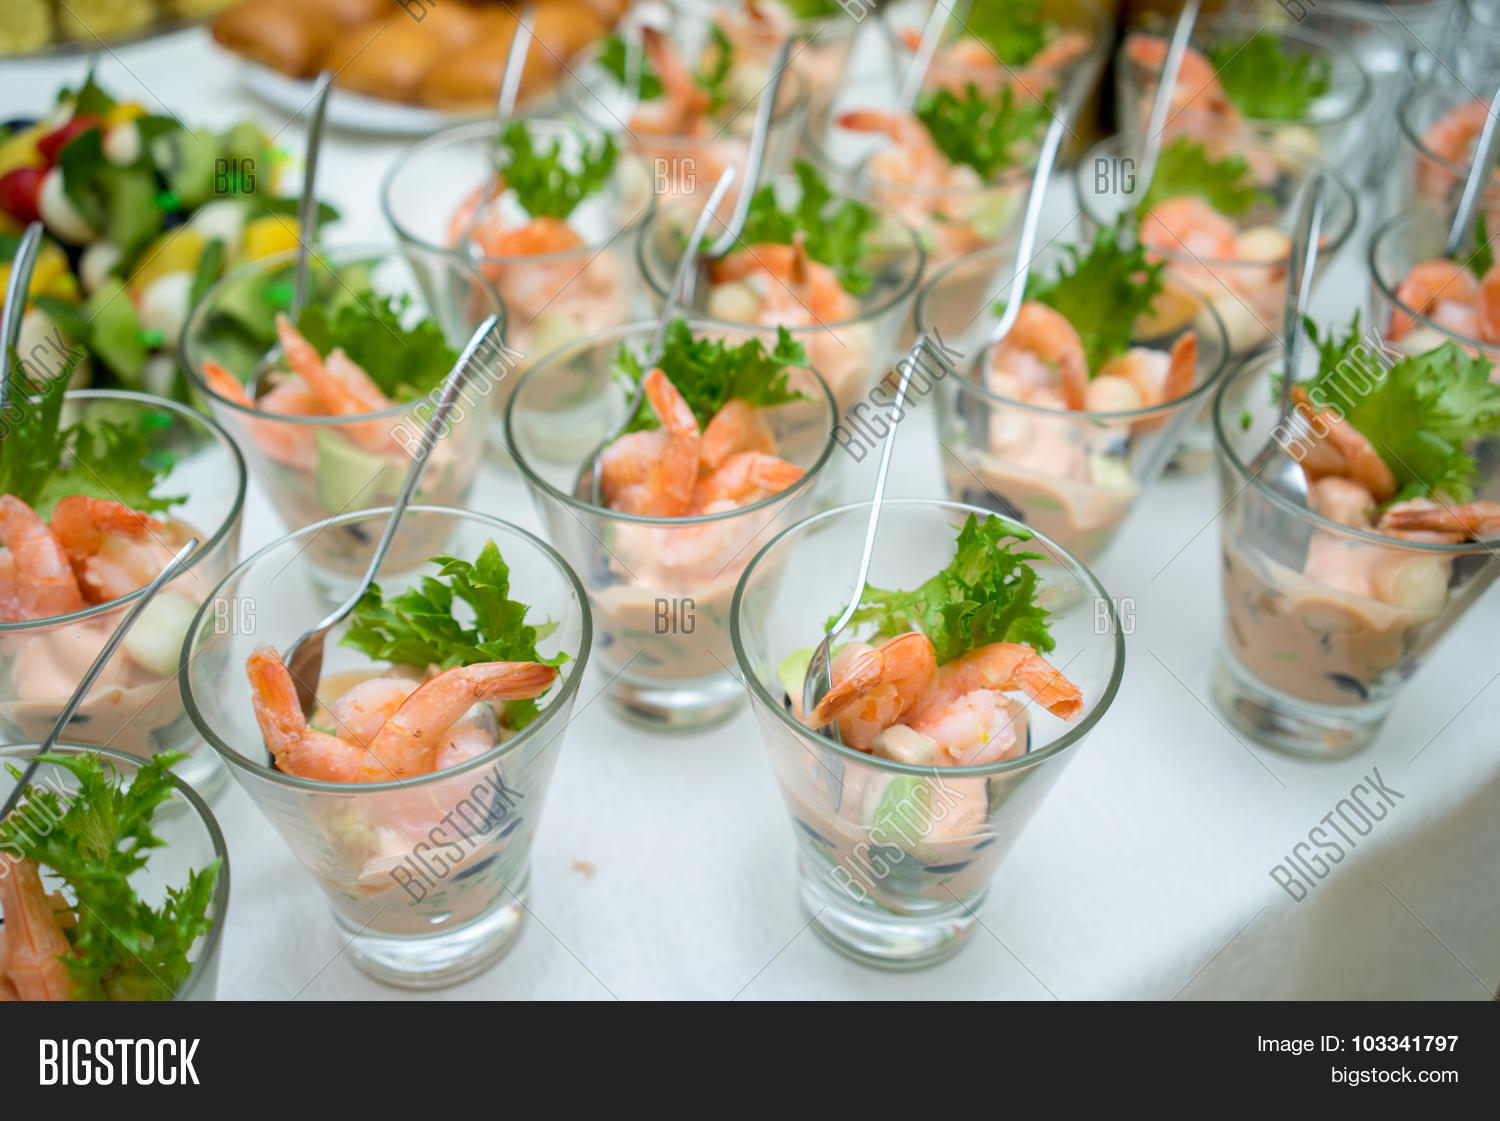 Shrimp or prawn cocktail snacks in shot glasses on table for Mini prawn cocktail canape